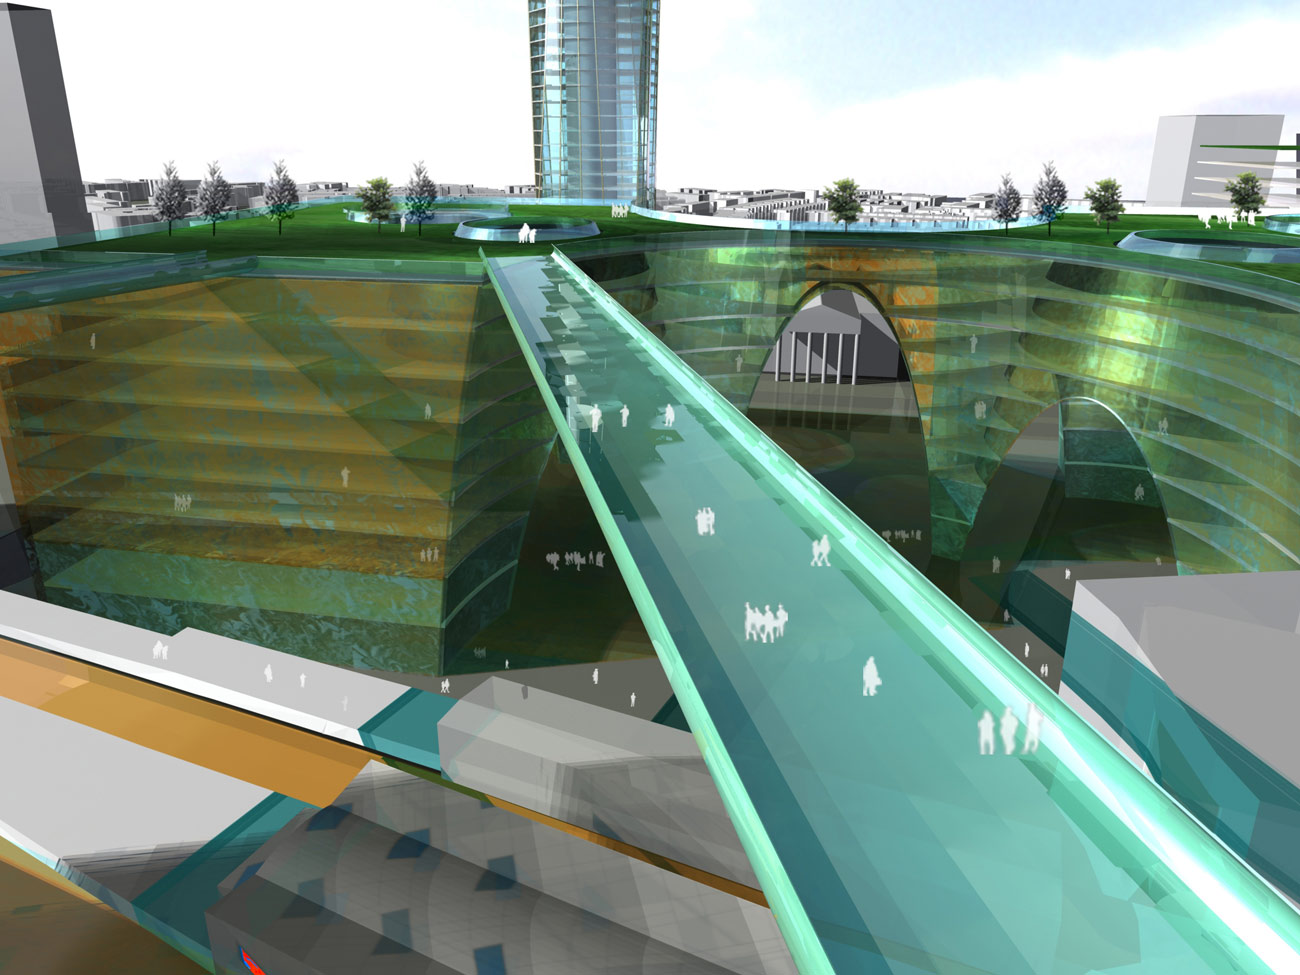 Elephant & Castle Master Plan Walkways View by Marks Barfield Architects